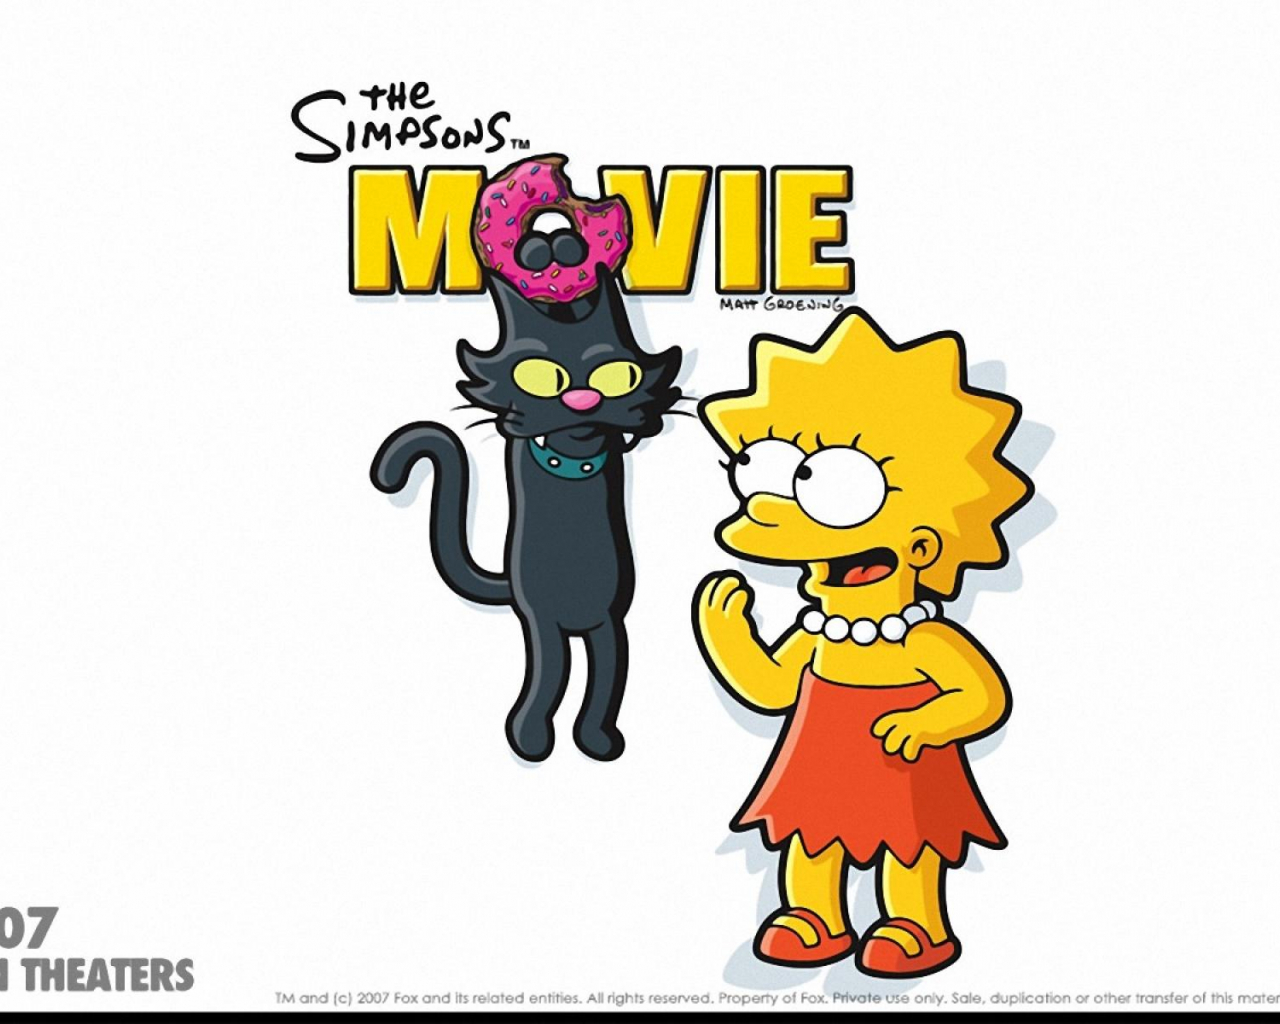 Free Download The Simpsons The Movie Wallpaper 14 Wallpapersbq 1920x1200 For Your Desktop Mobile Tablet Explore 73 Simpsons Movie Wallpaper Crazy Wallpapers Homer Simpson Wallpaper Bart Simpson Wallpaper